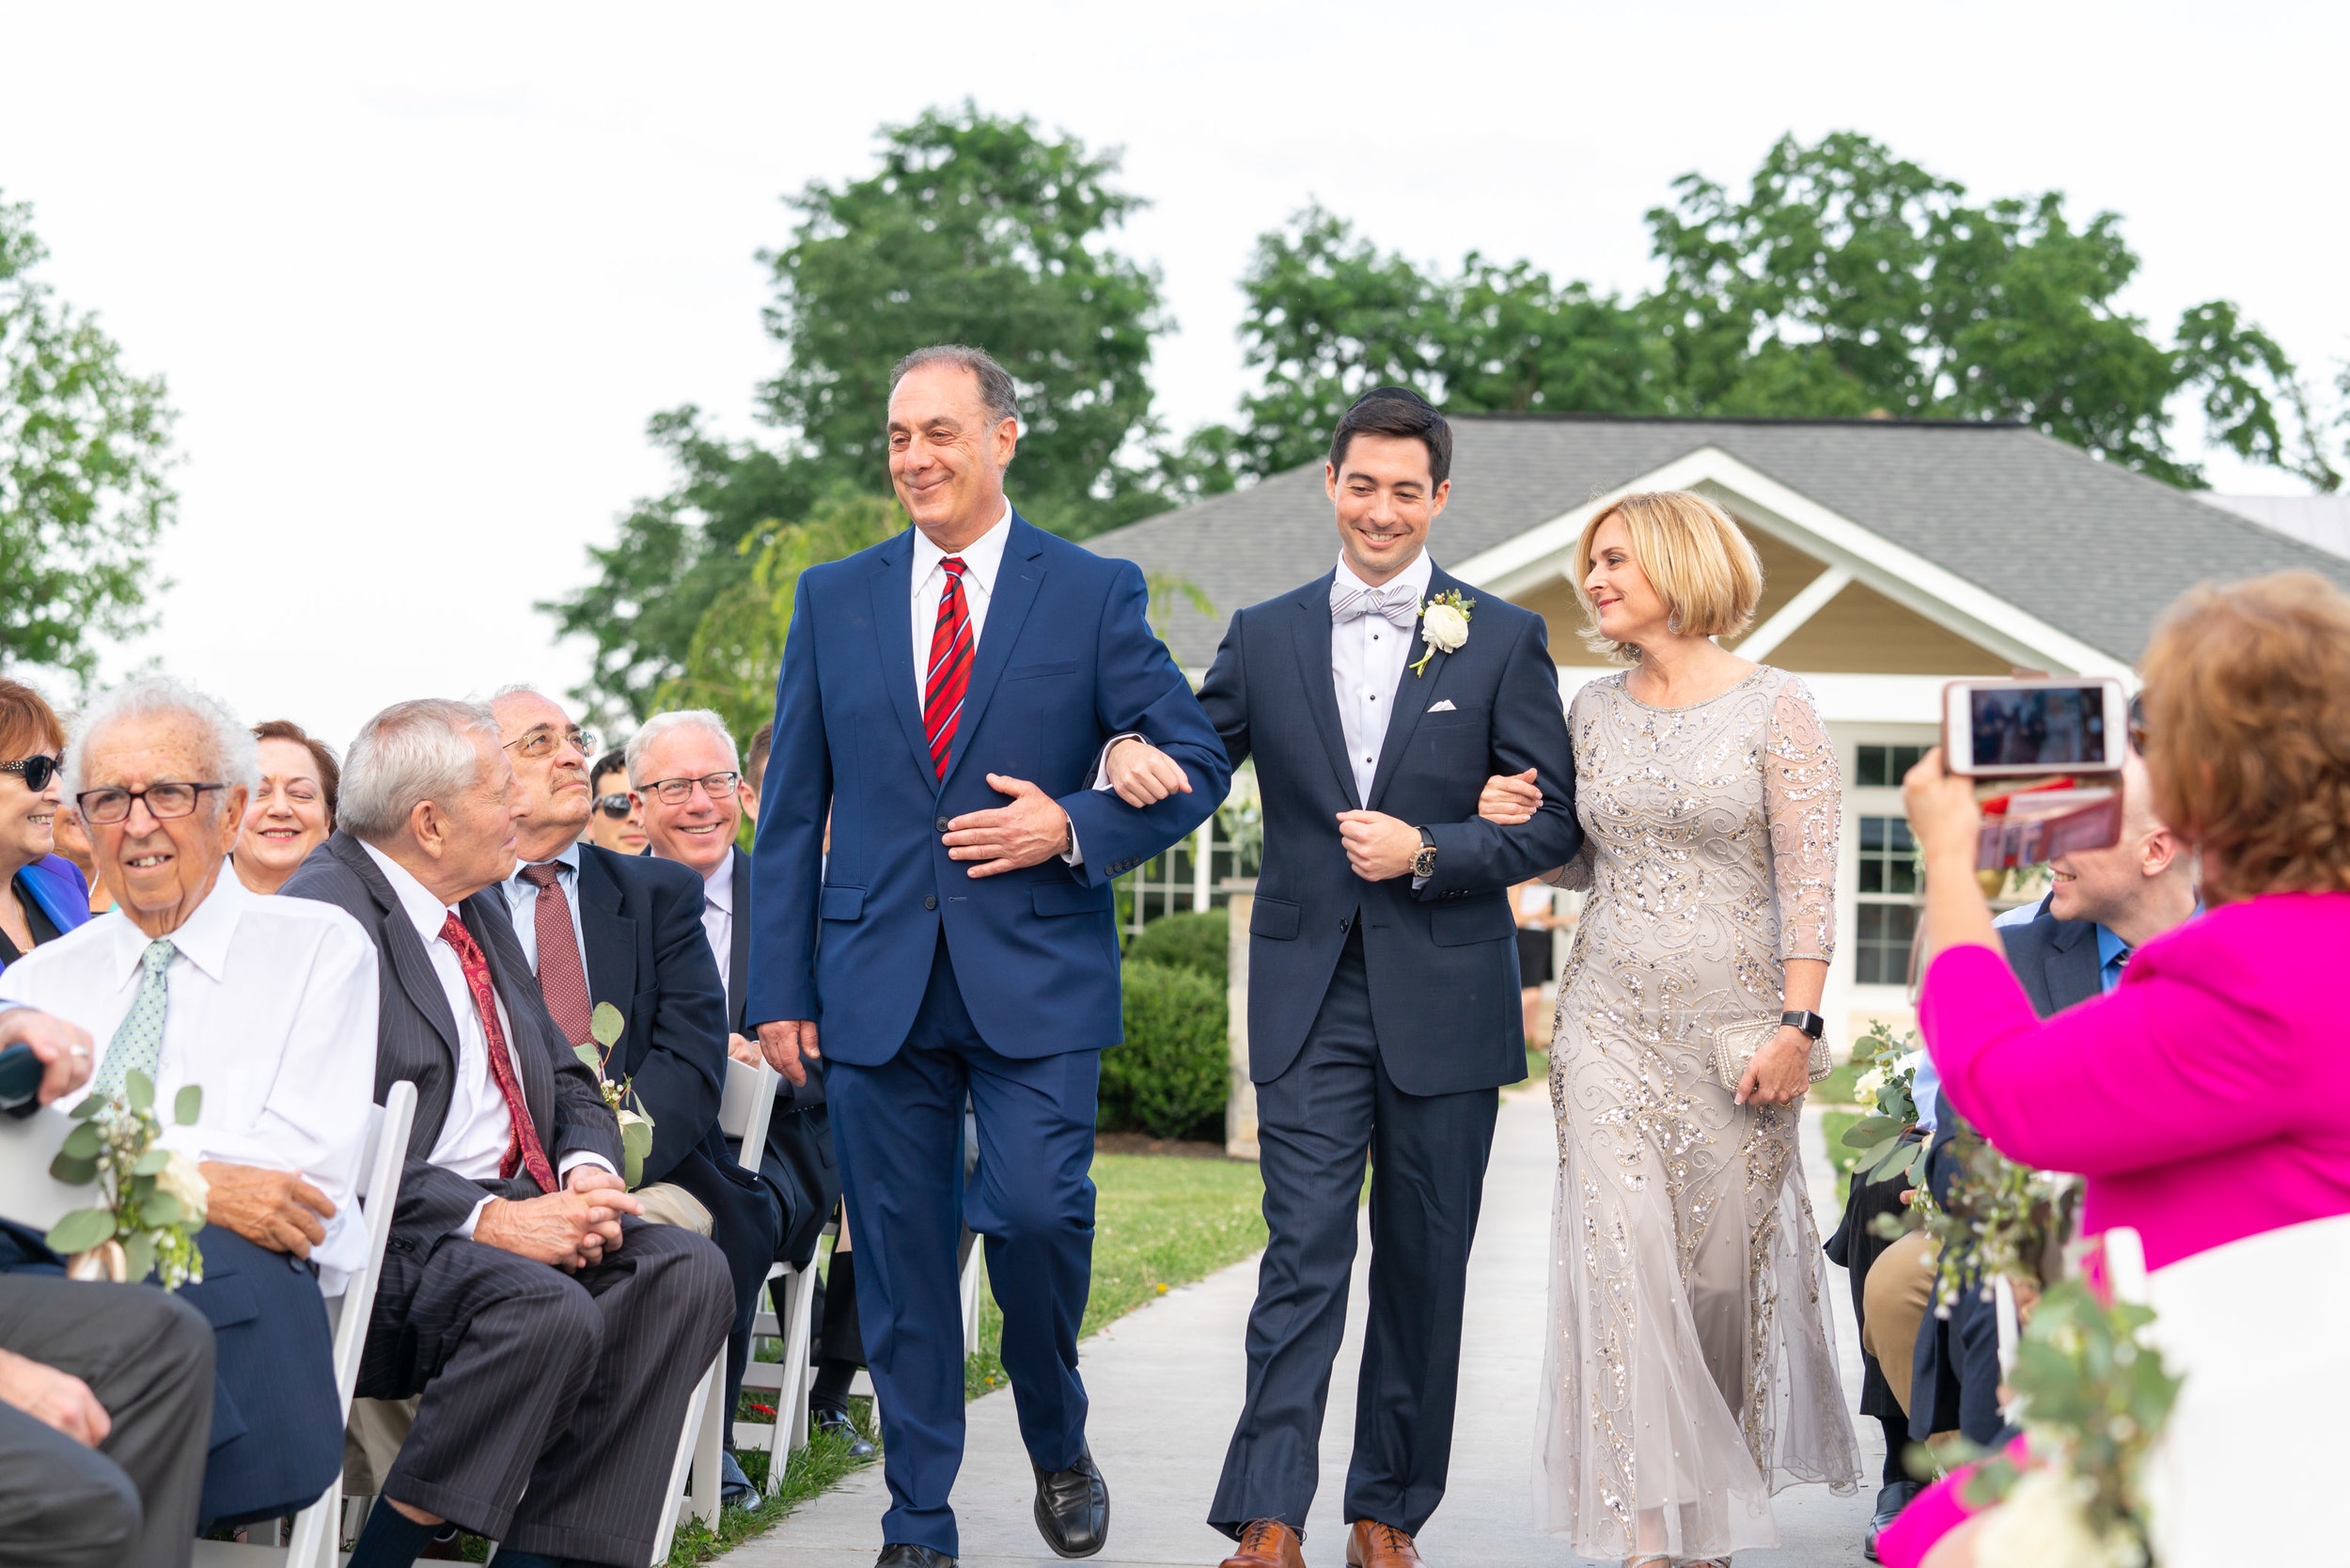 Groom's parents walking down the aisle during ceremony at Springfield Manor Winery